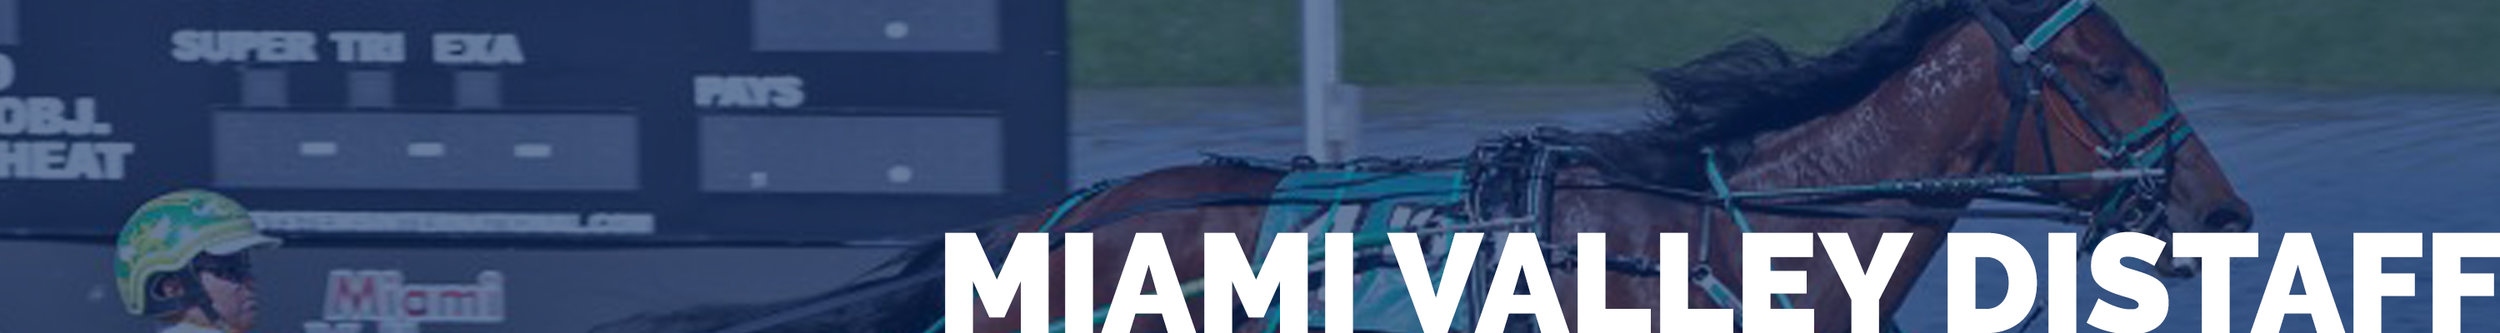 miami valley distaff banner.jpg